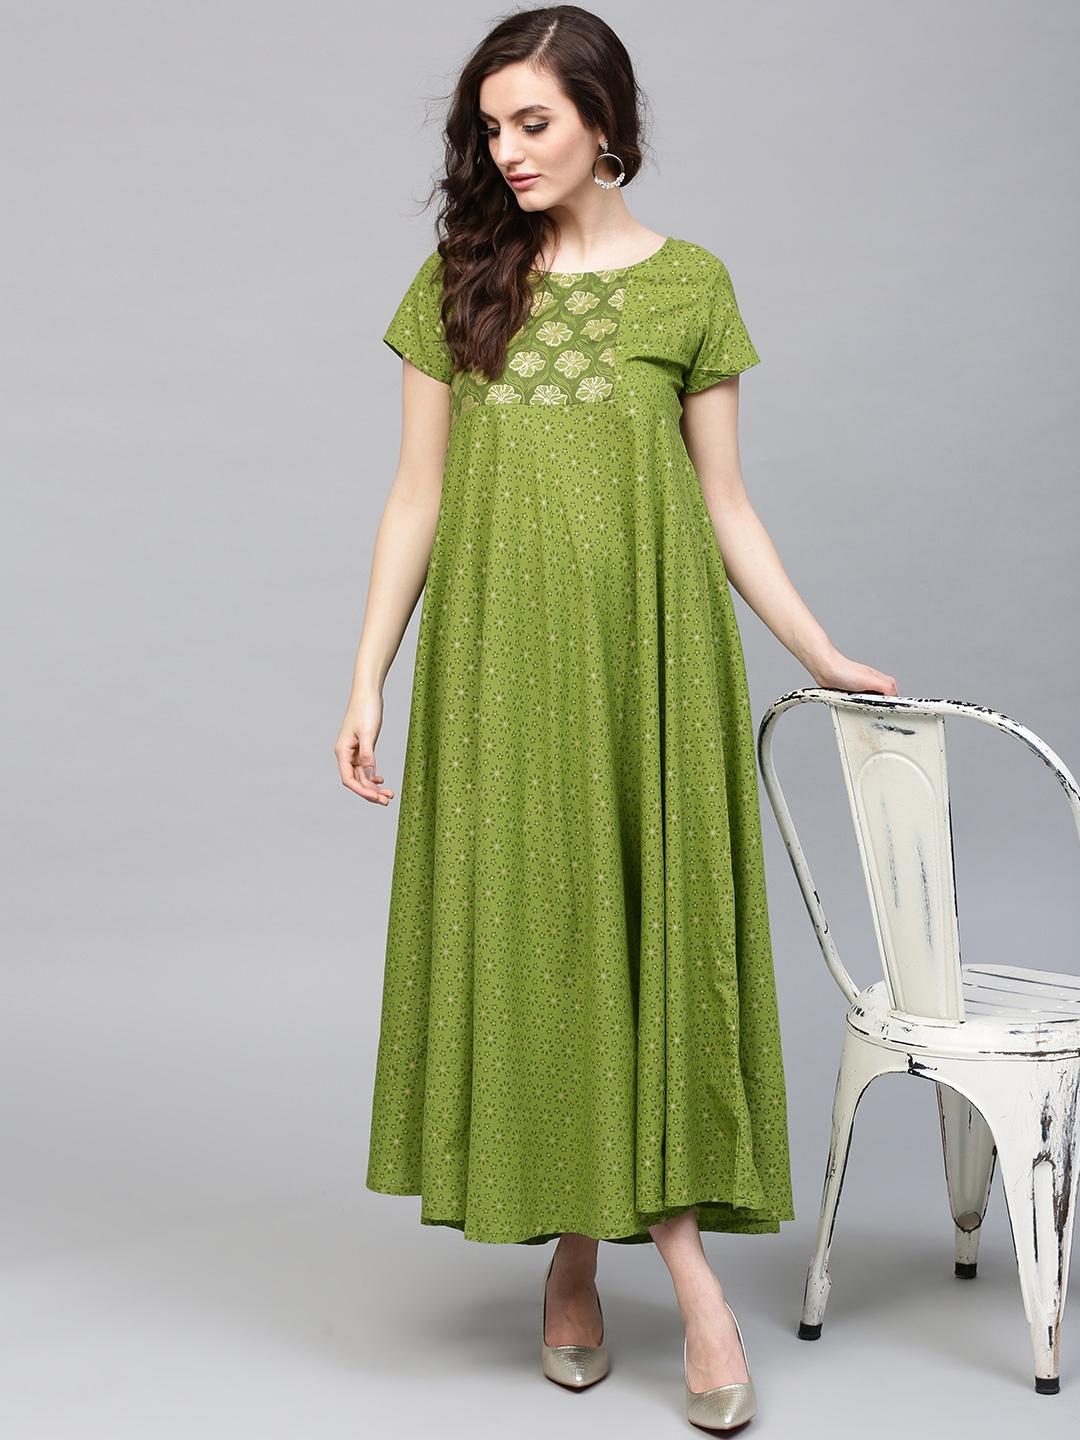 039d6083c Buy AKS Women Green Printed Maxi Dress With Gathers - Dresses for ...